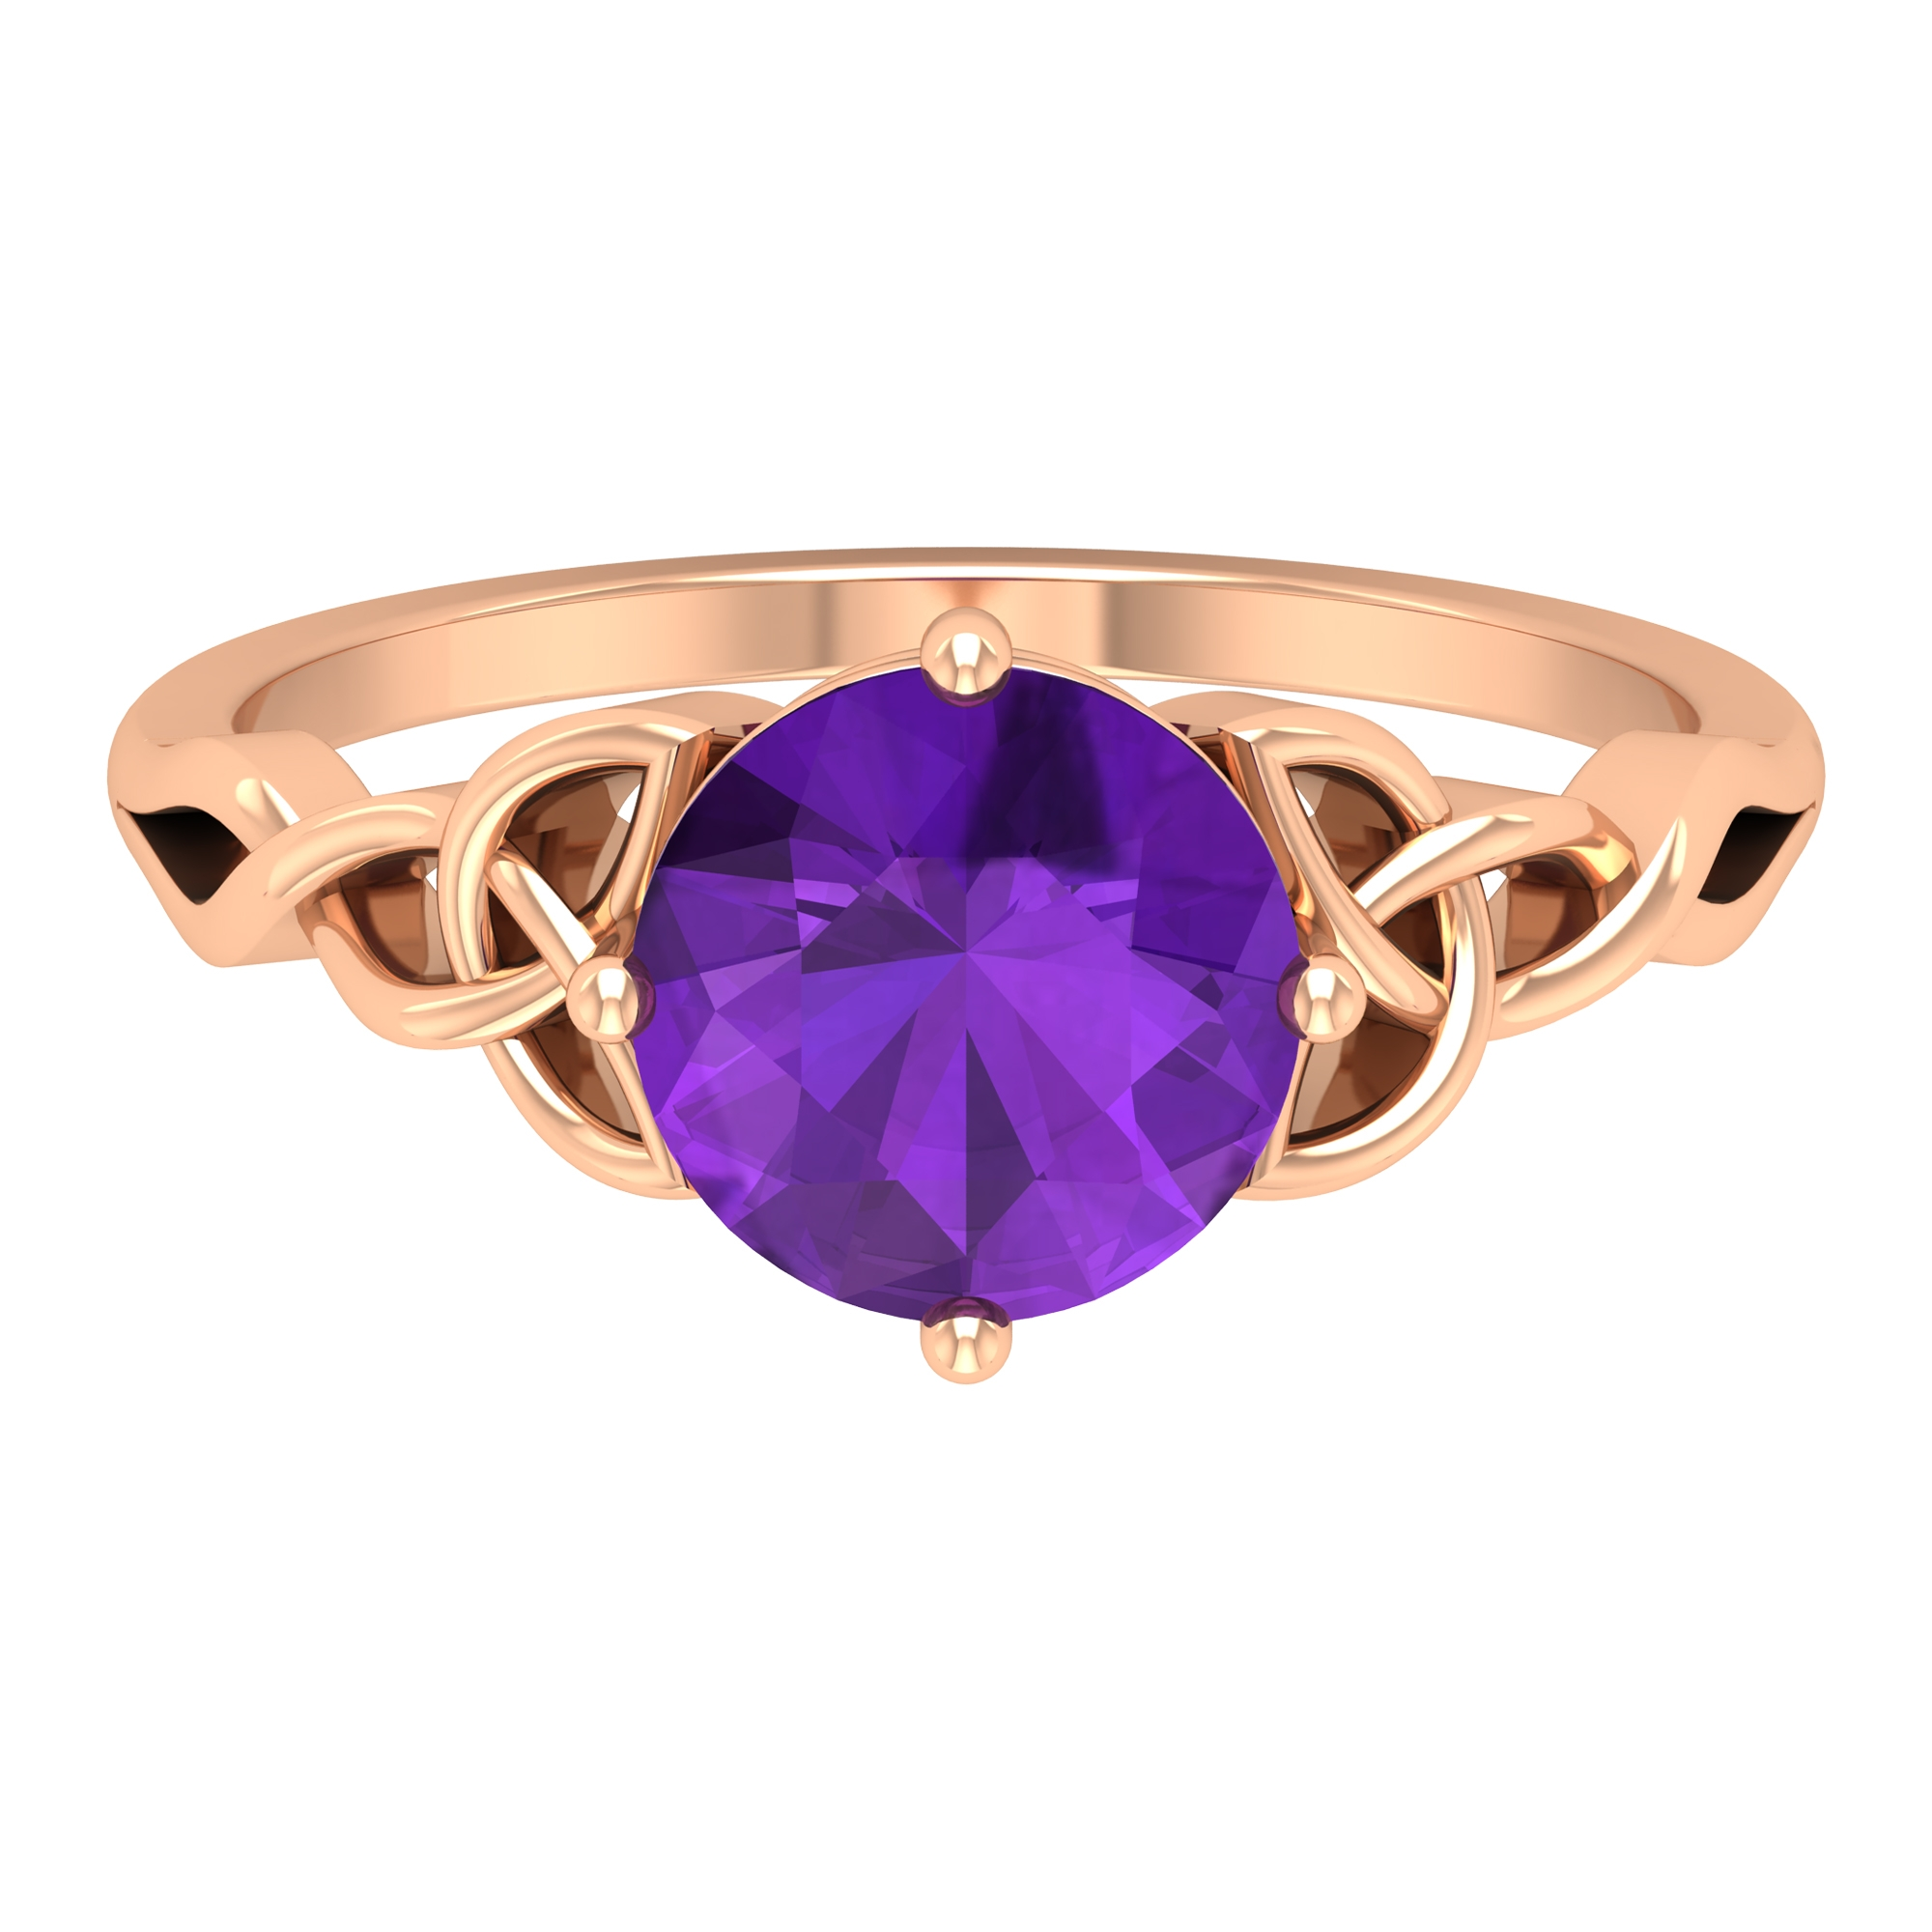 1.75 CT Solitaire Amethyst Celtic Engagement Ring in 4 Prong Diagonal Setting